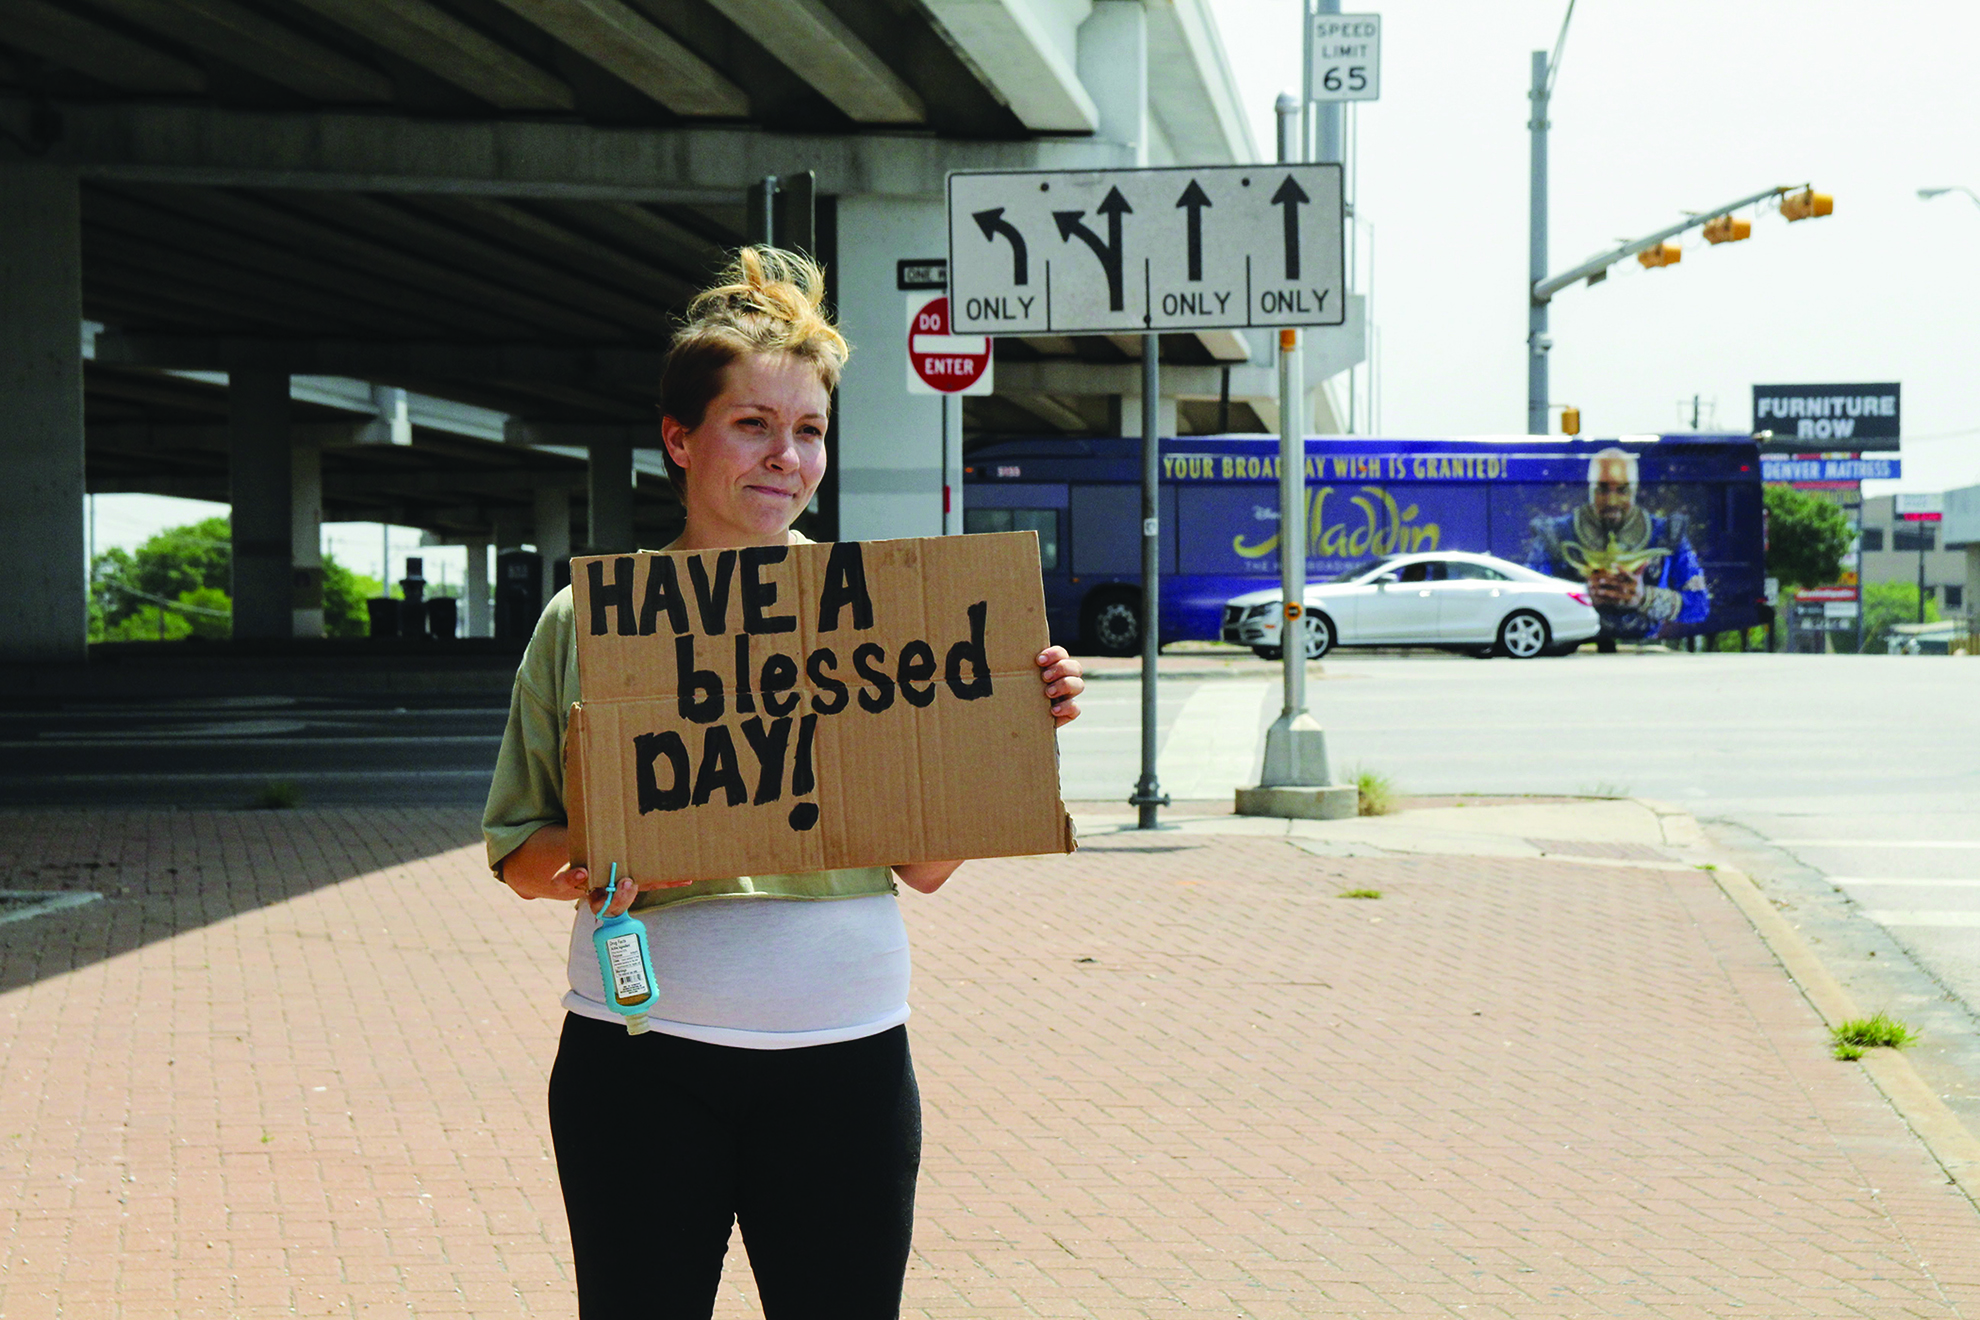 Rachel Schuyler lives under a bridge in North Austin. She started a group called Hobos with God to help her fellow unhoused.